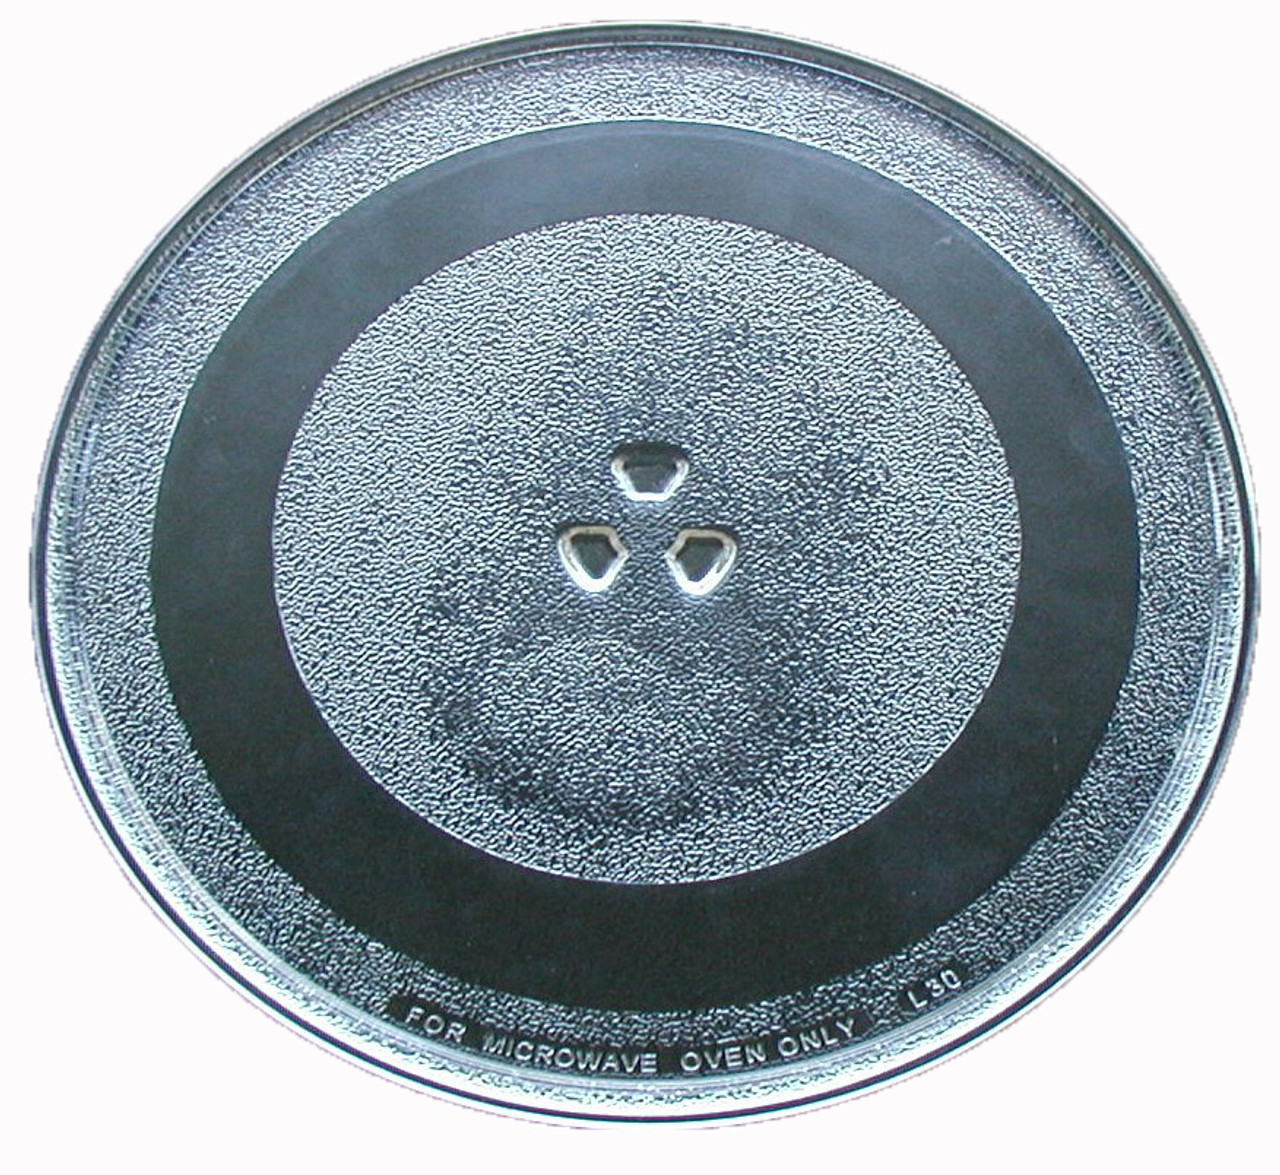 kenmore microwave glass turntable plate tray 13 1 2 3390w1a019